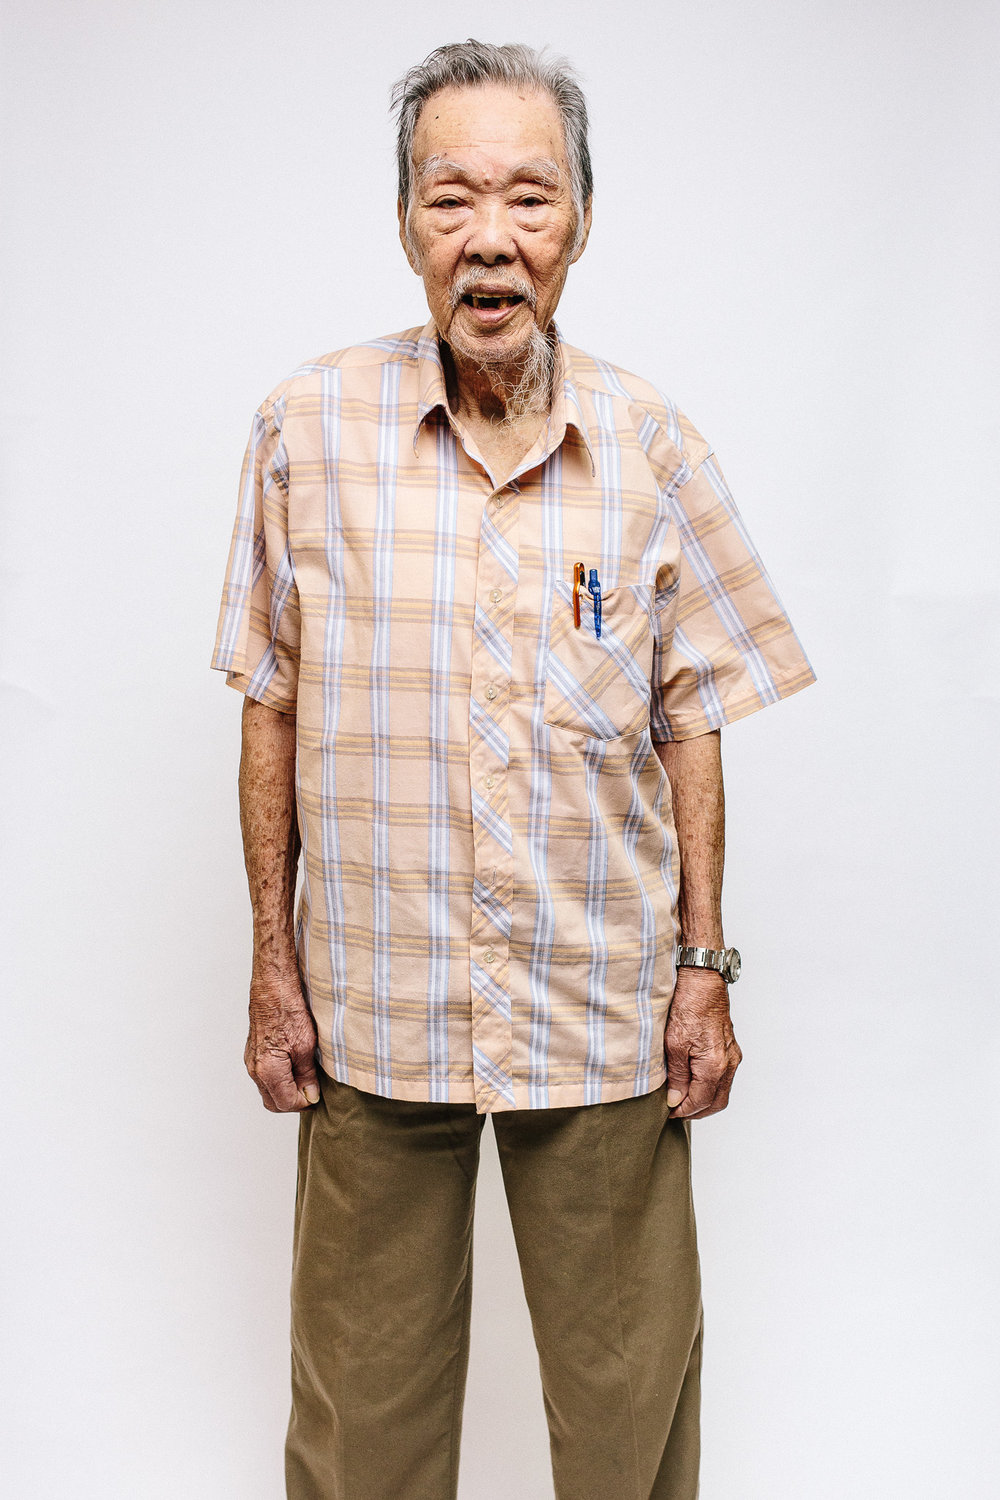 zainal-zainal-studio-centenarians-care-duke-nus-singapore-photographer-06.jpg